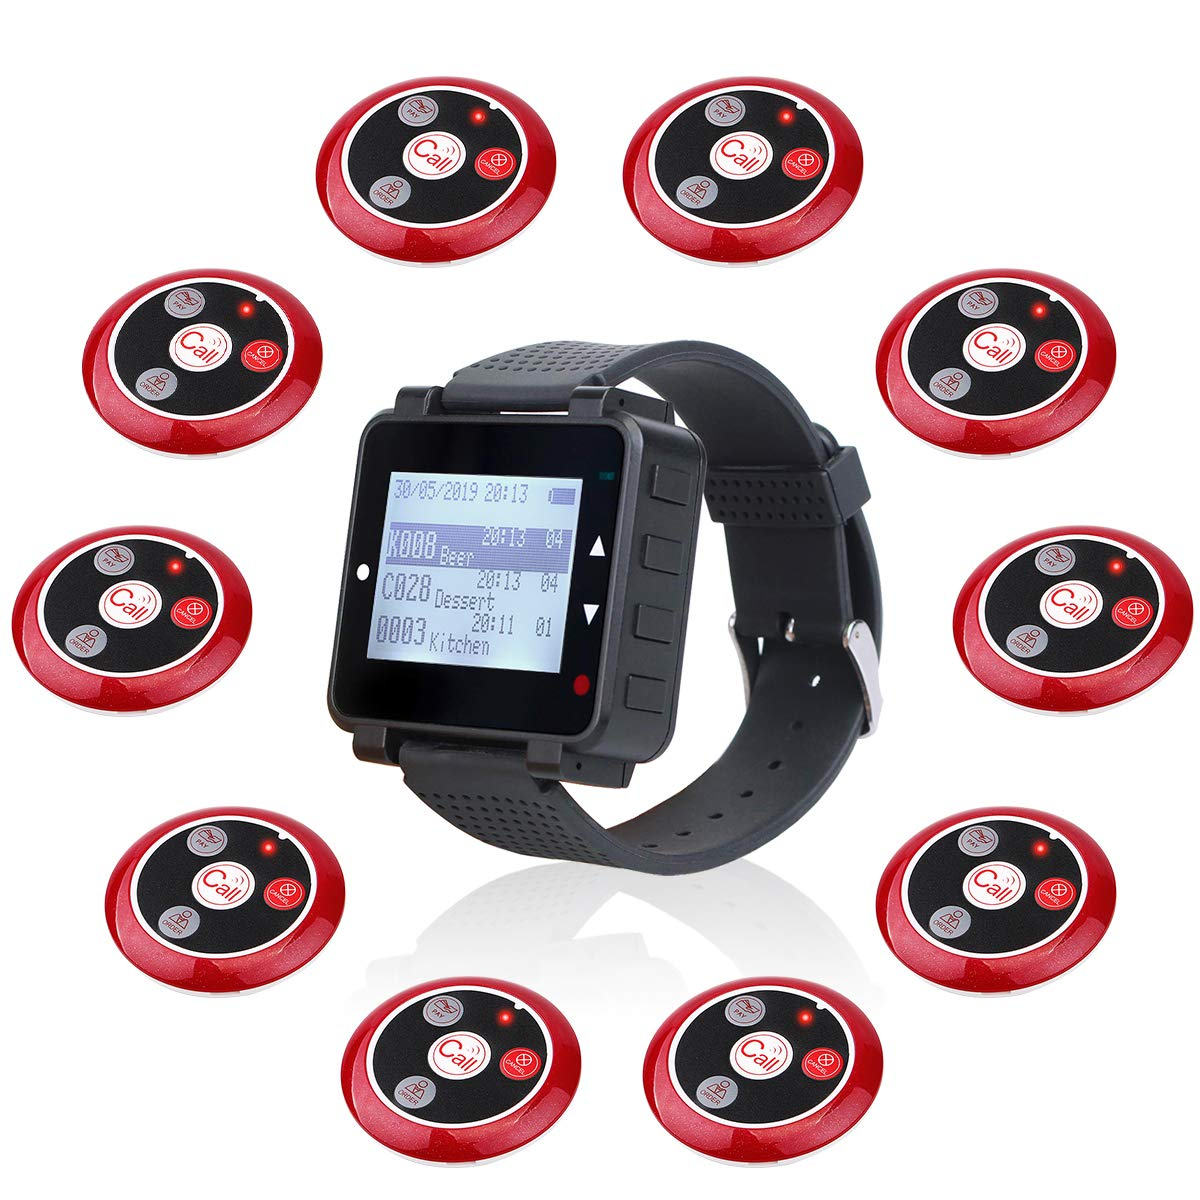 Retekess T128 Restaurant Pager System Vibration Buzzer Customise Waiter Calling System Watch Pager (Black,1 Pack) and 4-Key Call Button (Red,10 Pack) by Retekess